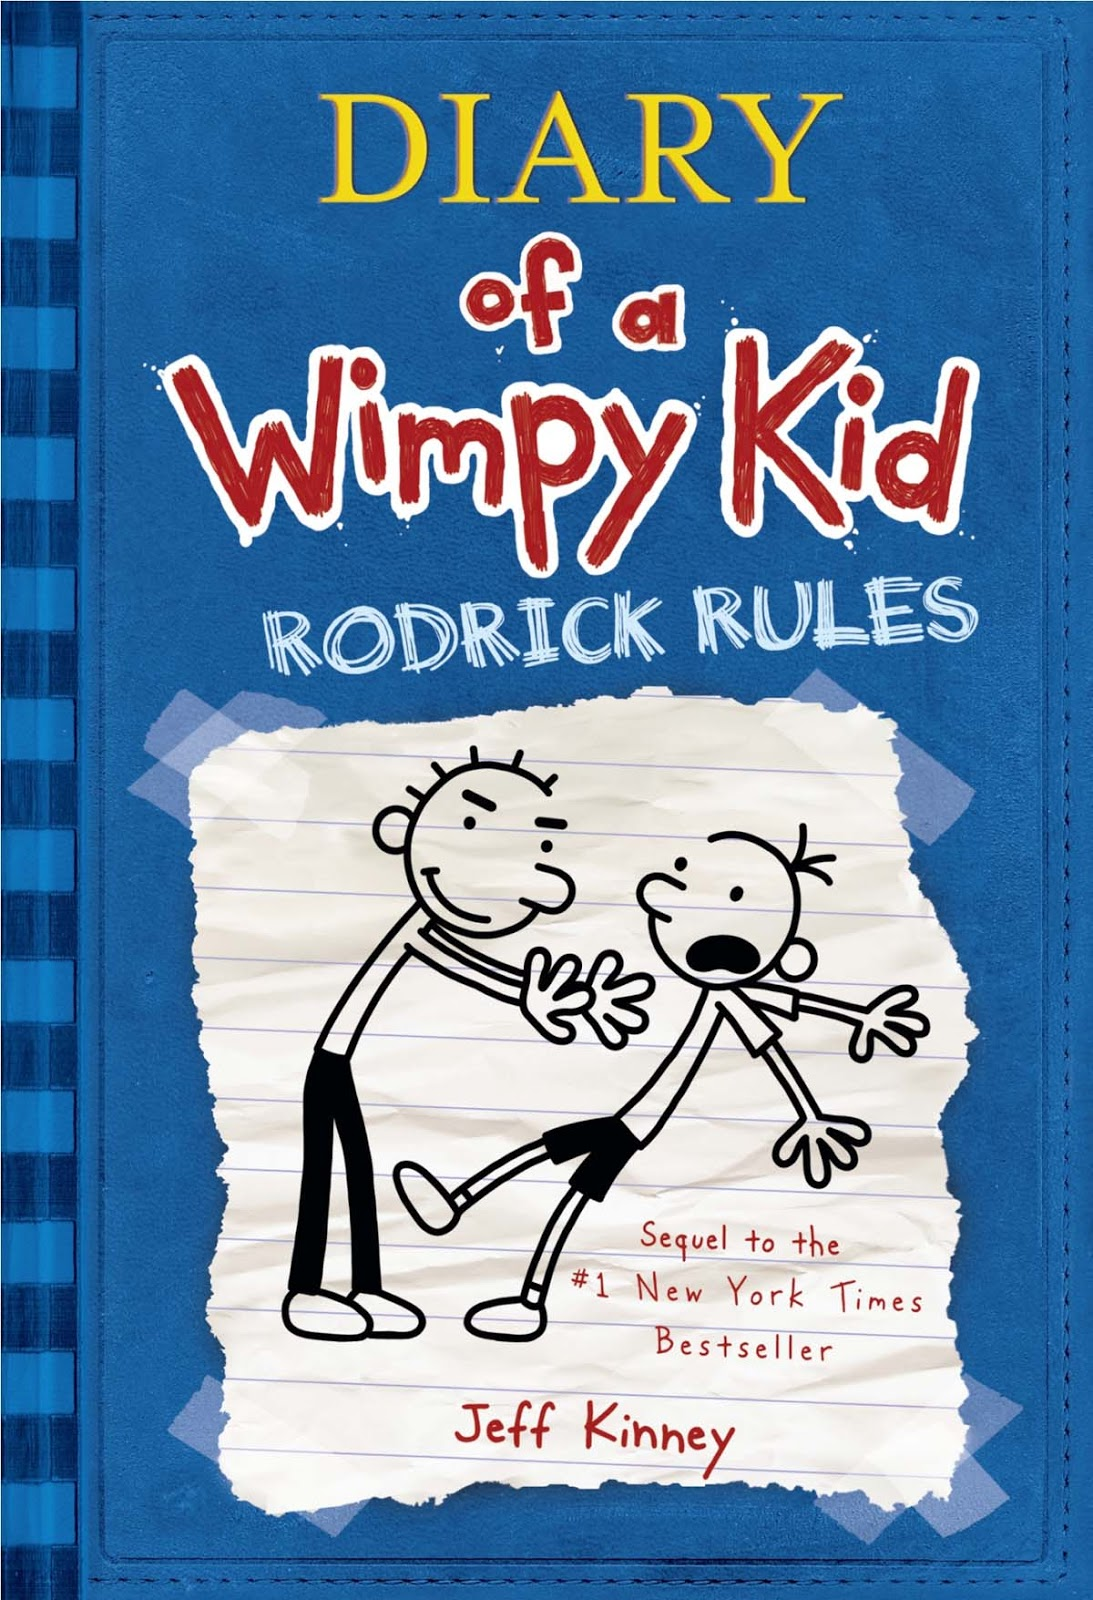 Diary Of A Fashion Mister Strictly Confidential: St. Peter Claver Reads!: Diary Of A Wimpy Kid: Rodrick Rules